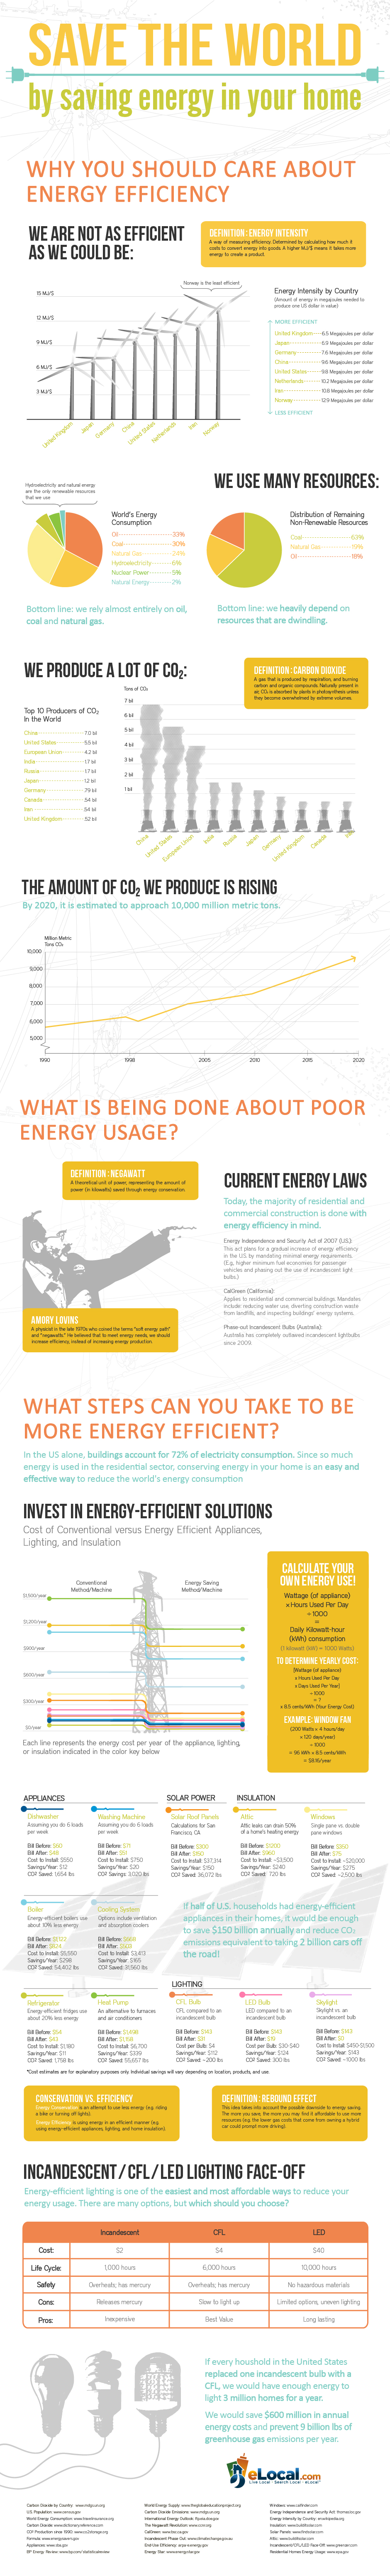 Save the world by saving energy in your home